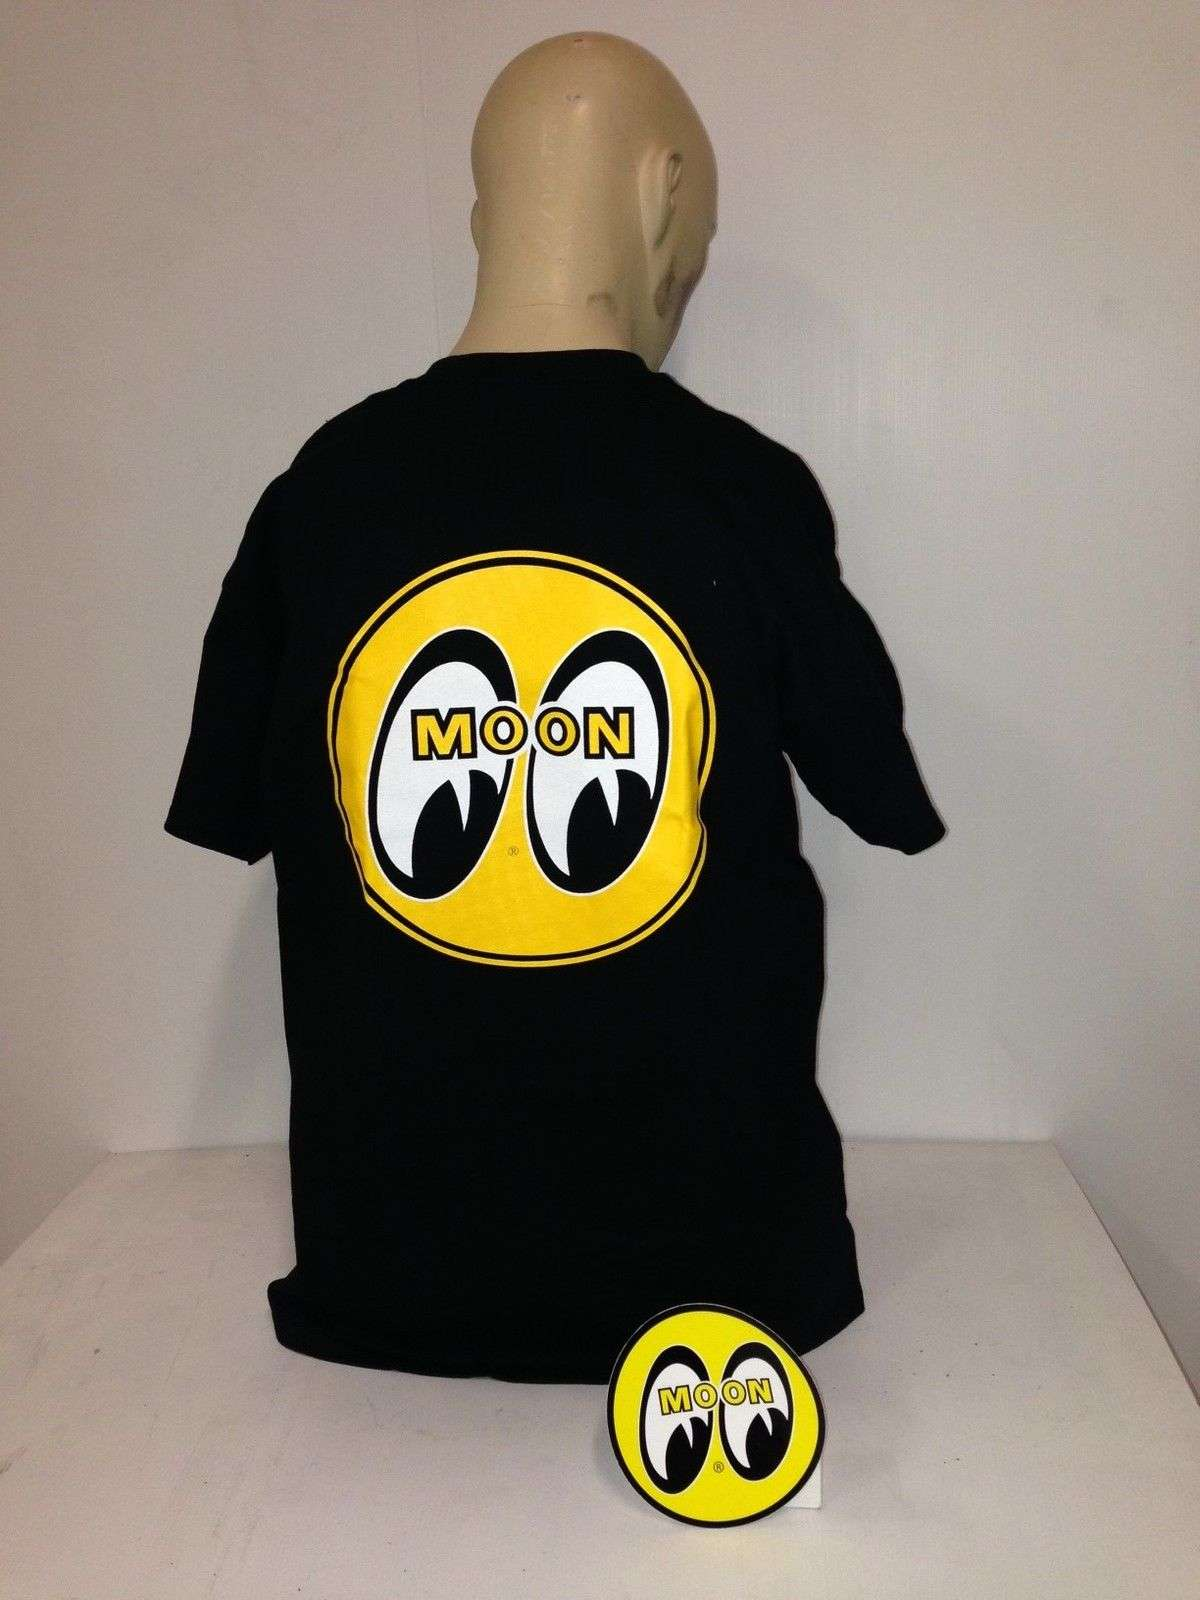 Mooneyes T Shirts Armadale Auto Parts